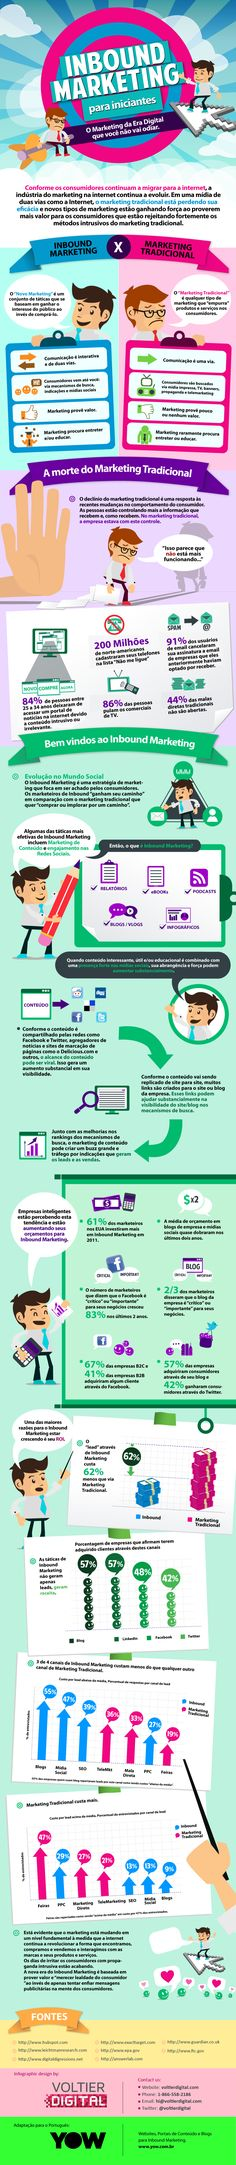 Inbound-Marketing-Infografico